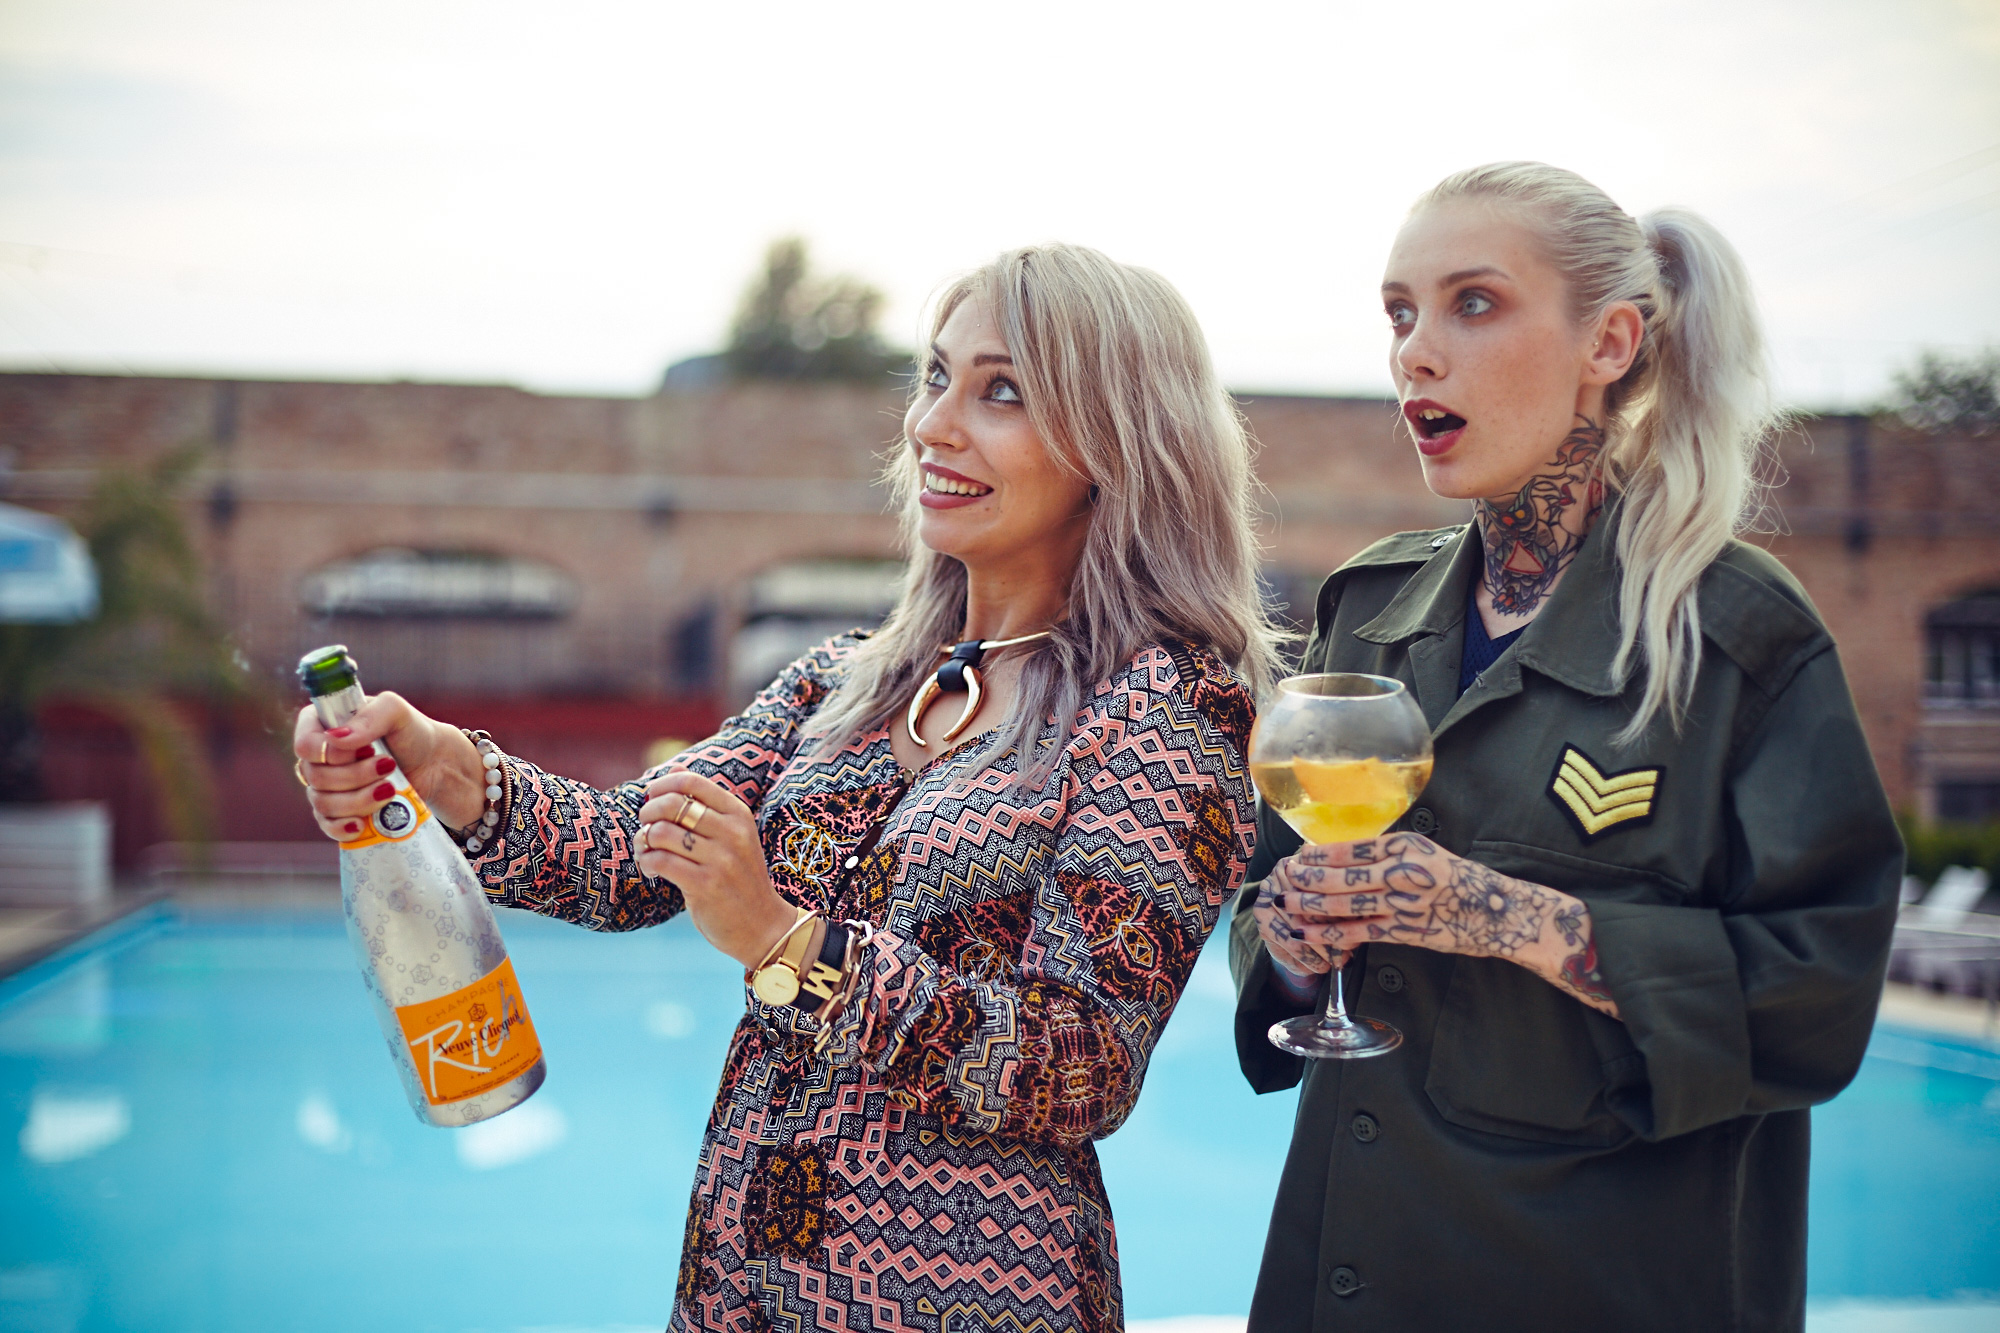 Veuve-Clicquot-Haubentaucher-Party-24